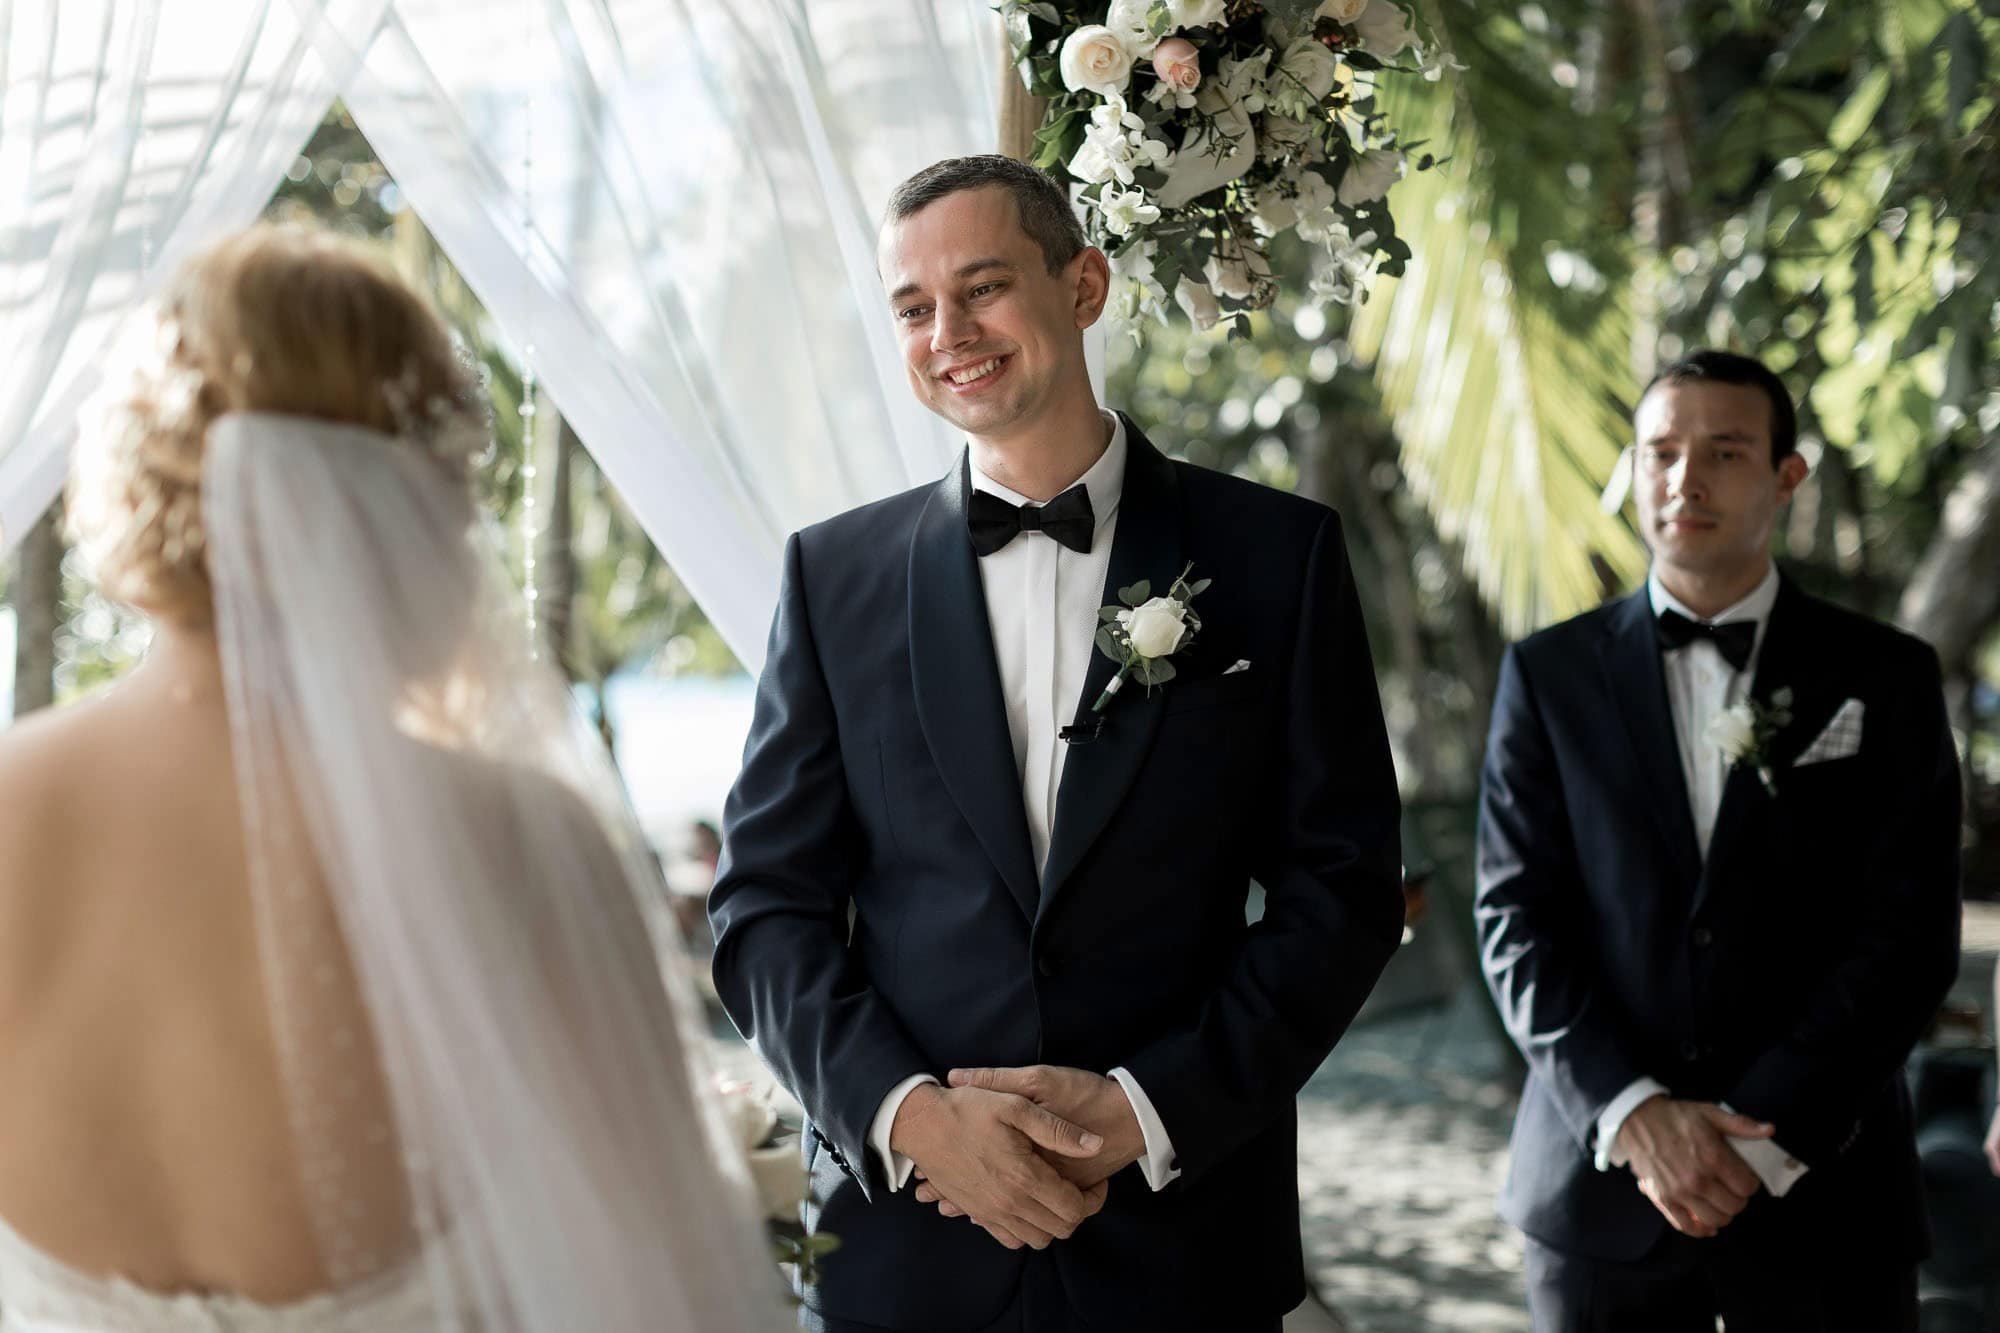 Pure happiness on the groom's face during the ceremony